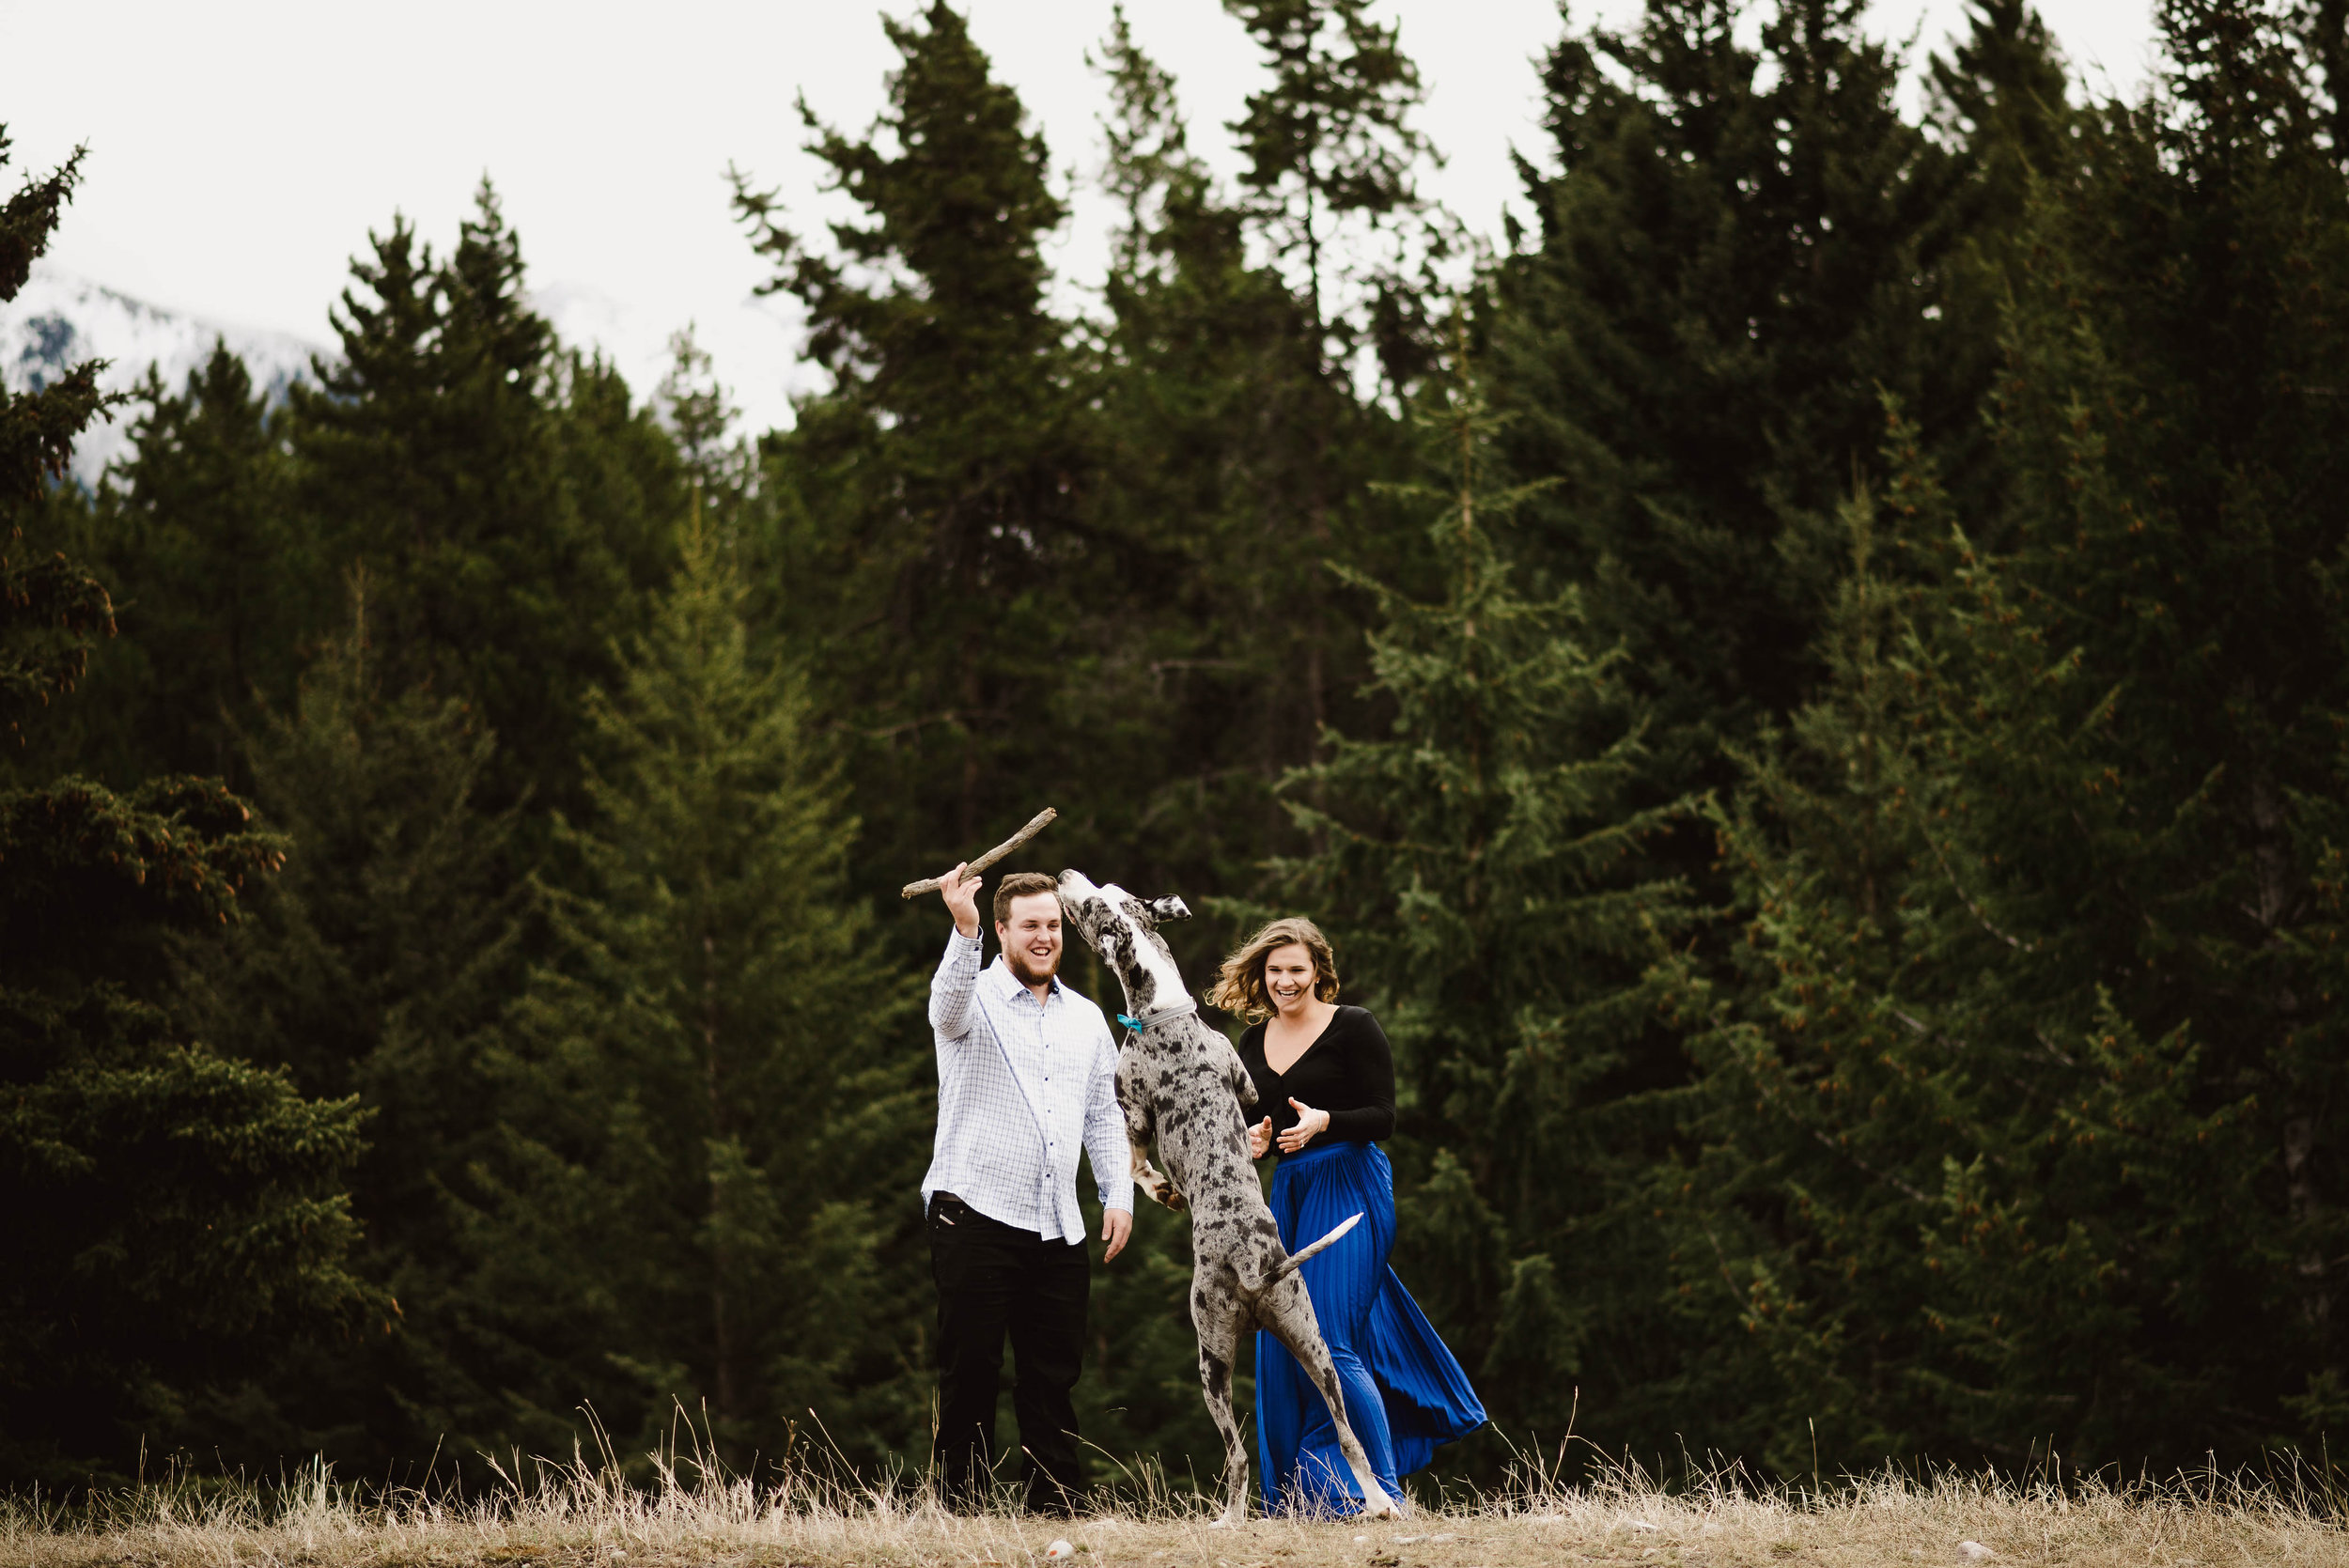 Isaiah-&-Taylor-Photography---Matt-&-Lindsay-Engagement-015.jpg